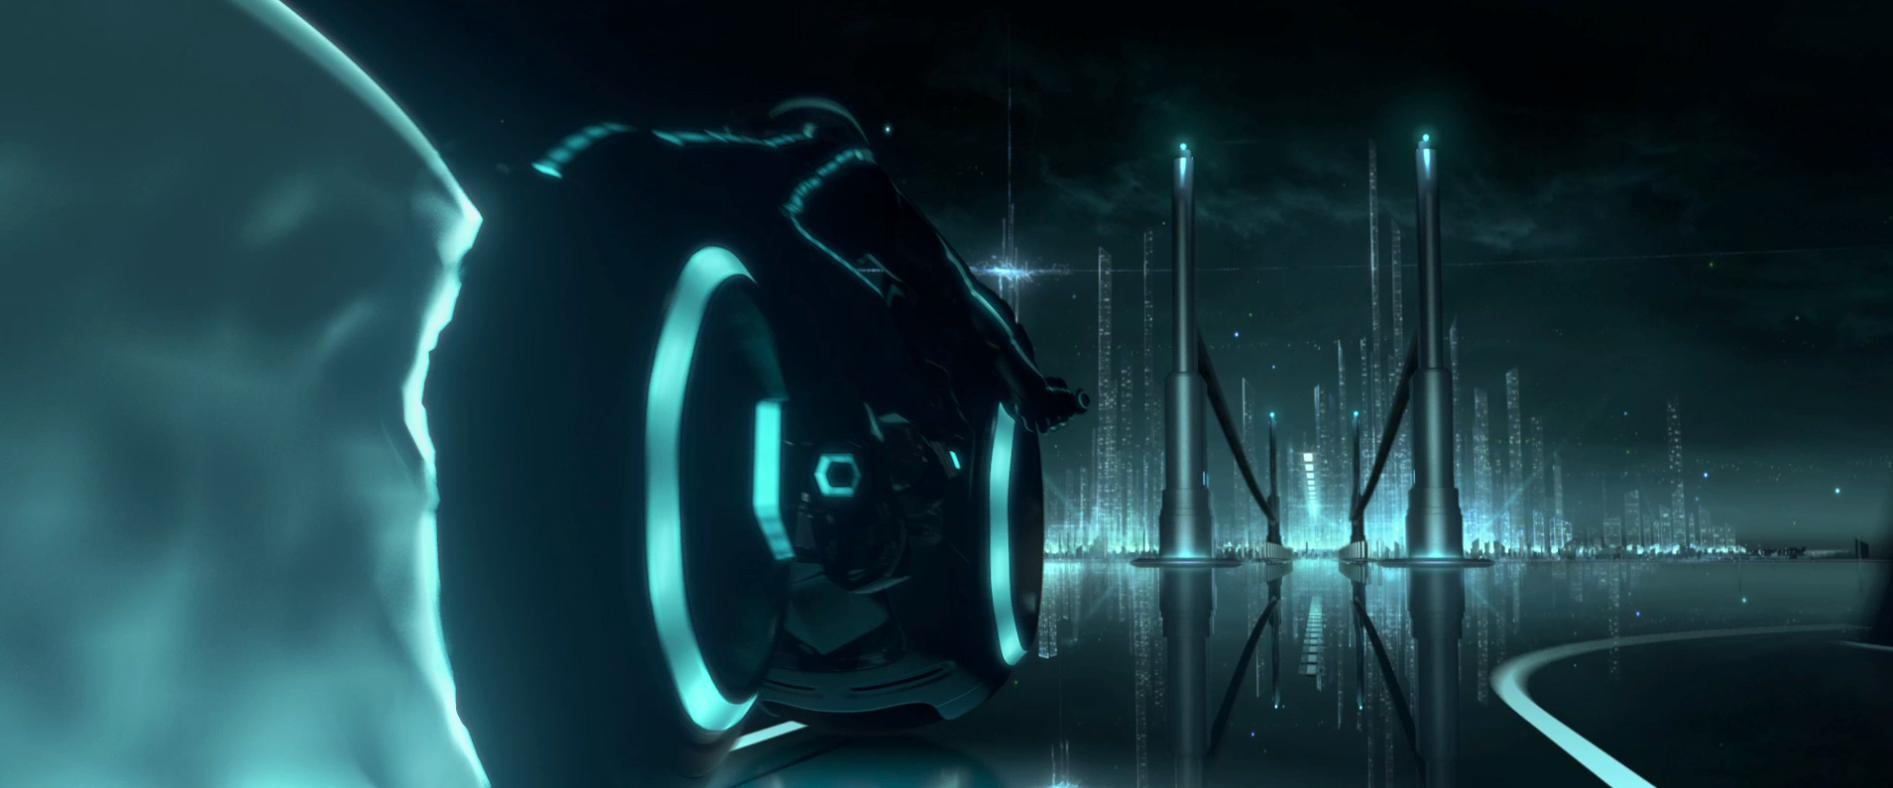 tron wallpaper hd style - photo #26